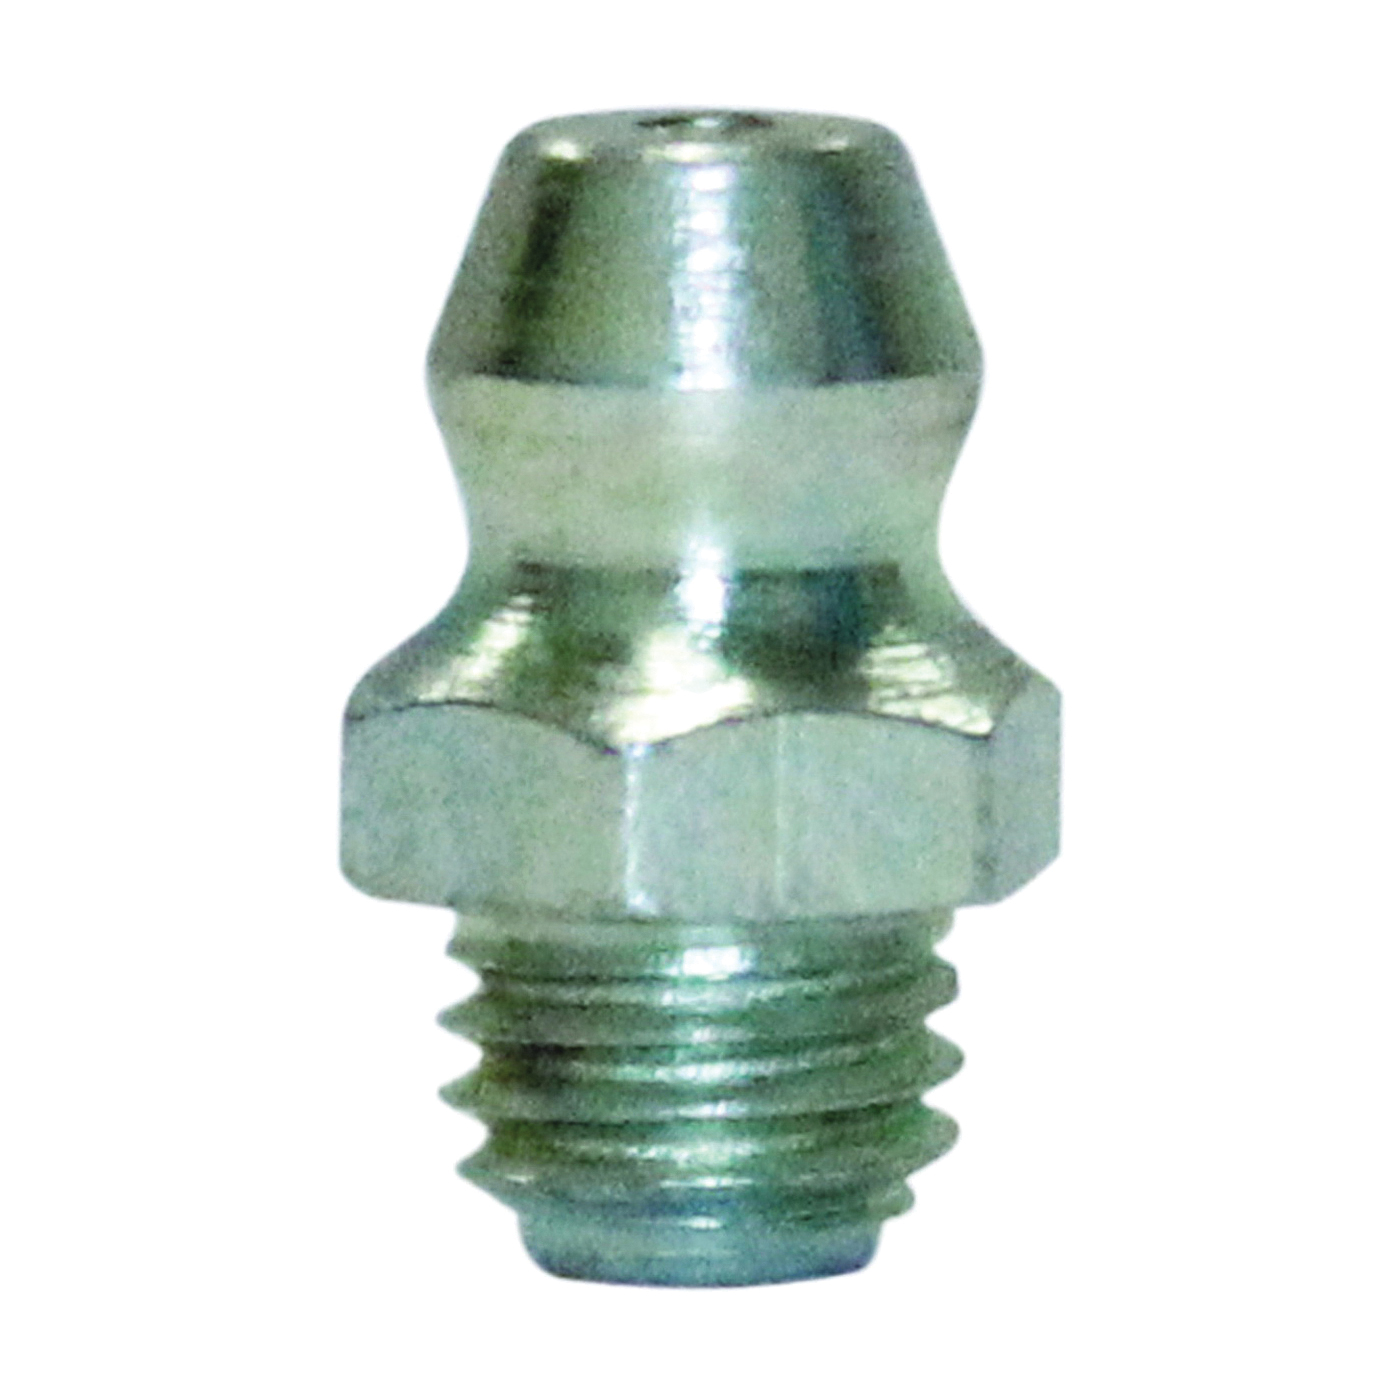 Picture of LubriMatic 11-301 Grease Fitting, M6 x 1